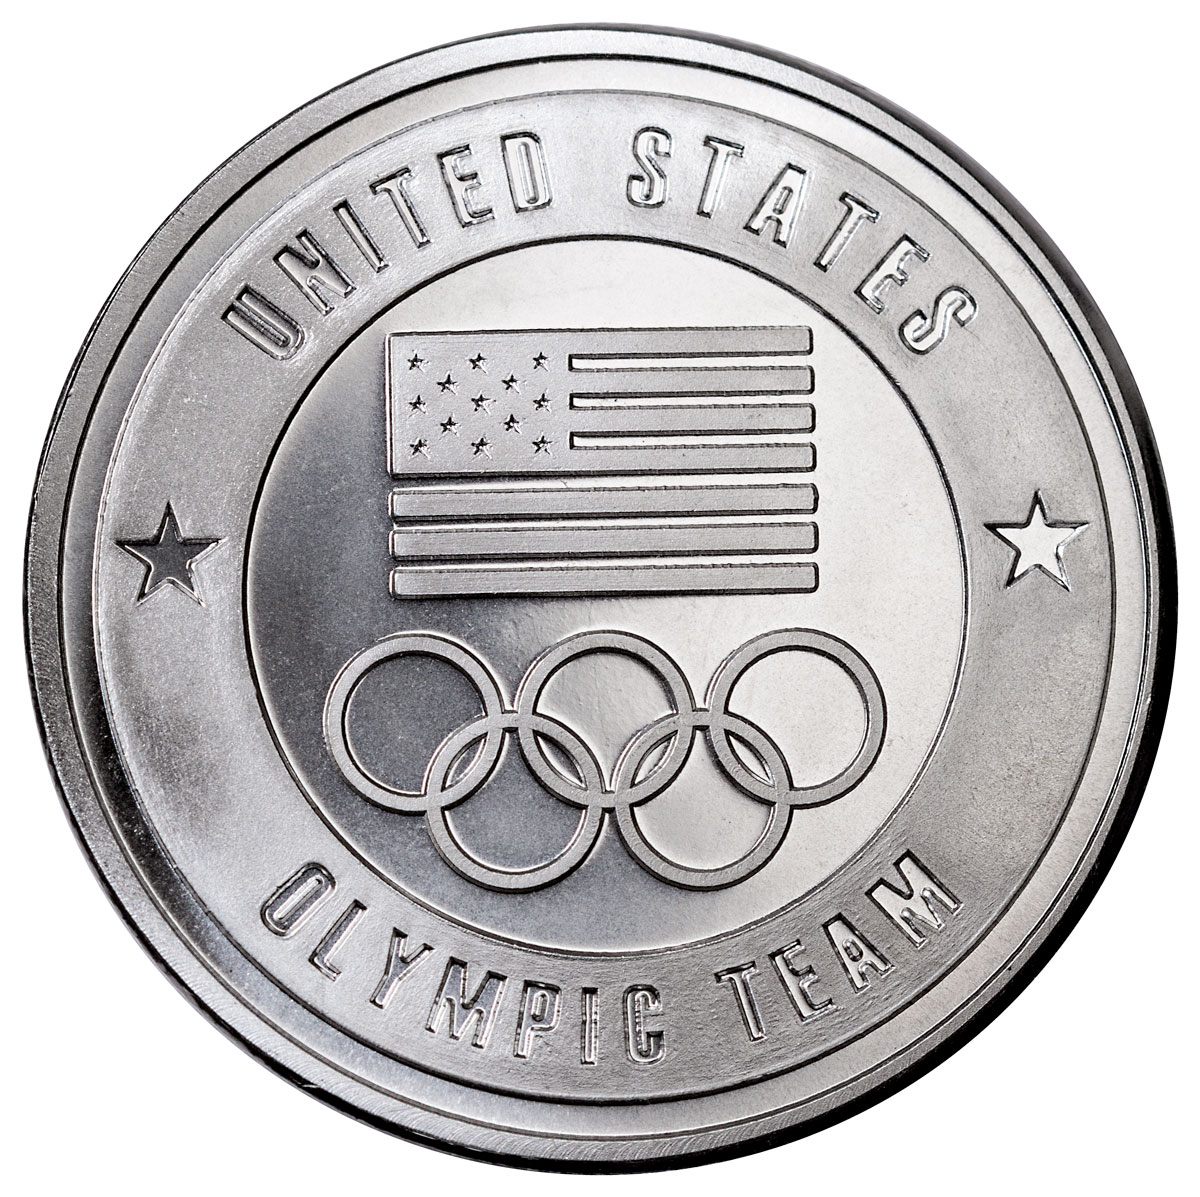 USA Olympic Team 1 oz. Silver Round